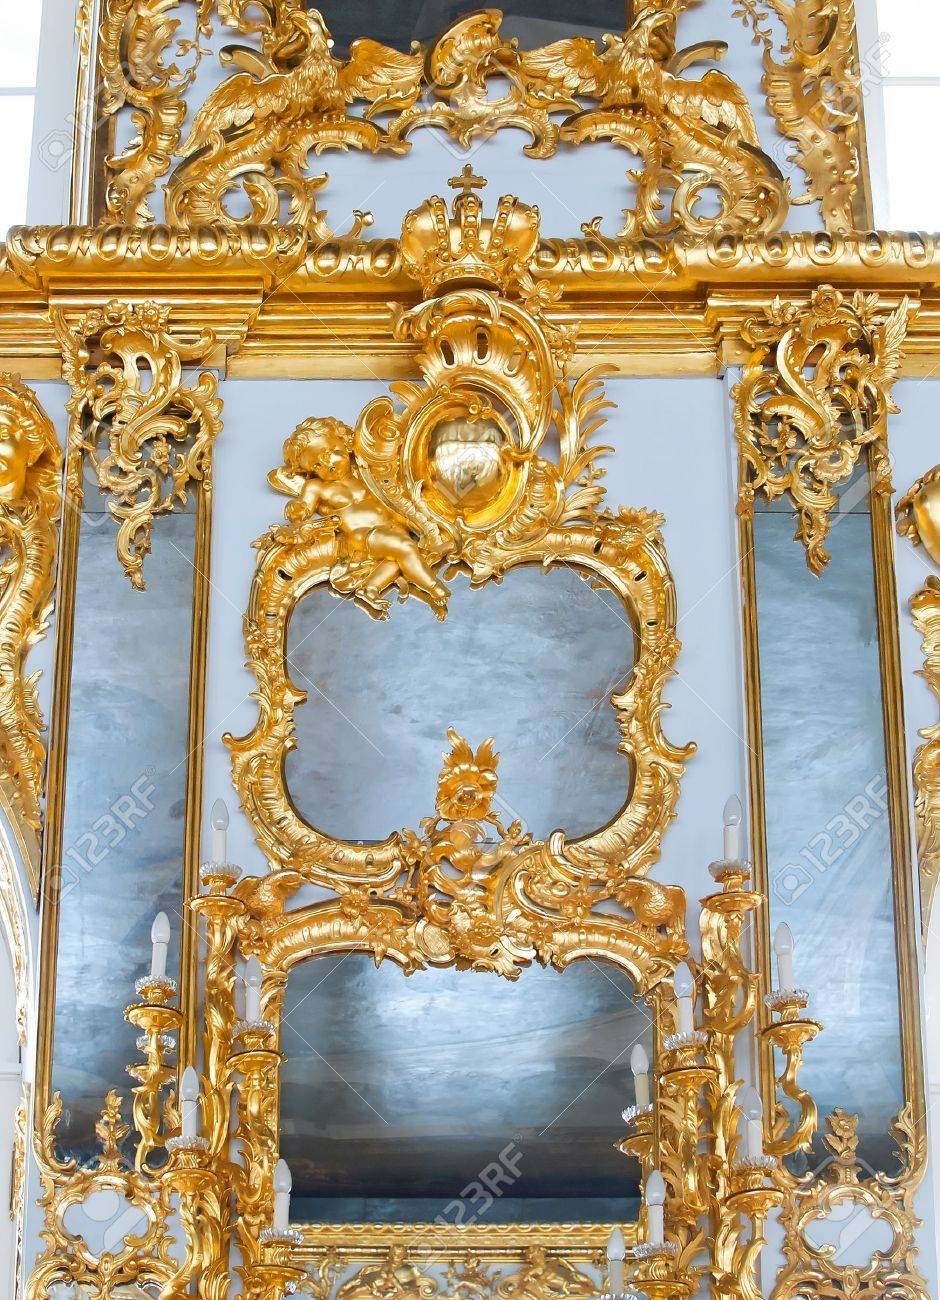 Mirrors In Frames With Golden Decorations On Wall Stock Photo With Regard To Baroque Gold Mirrors (View 9 of 15)